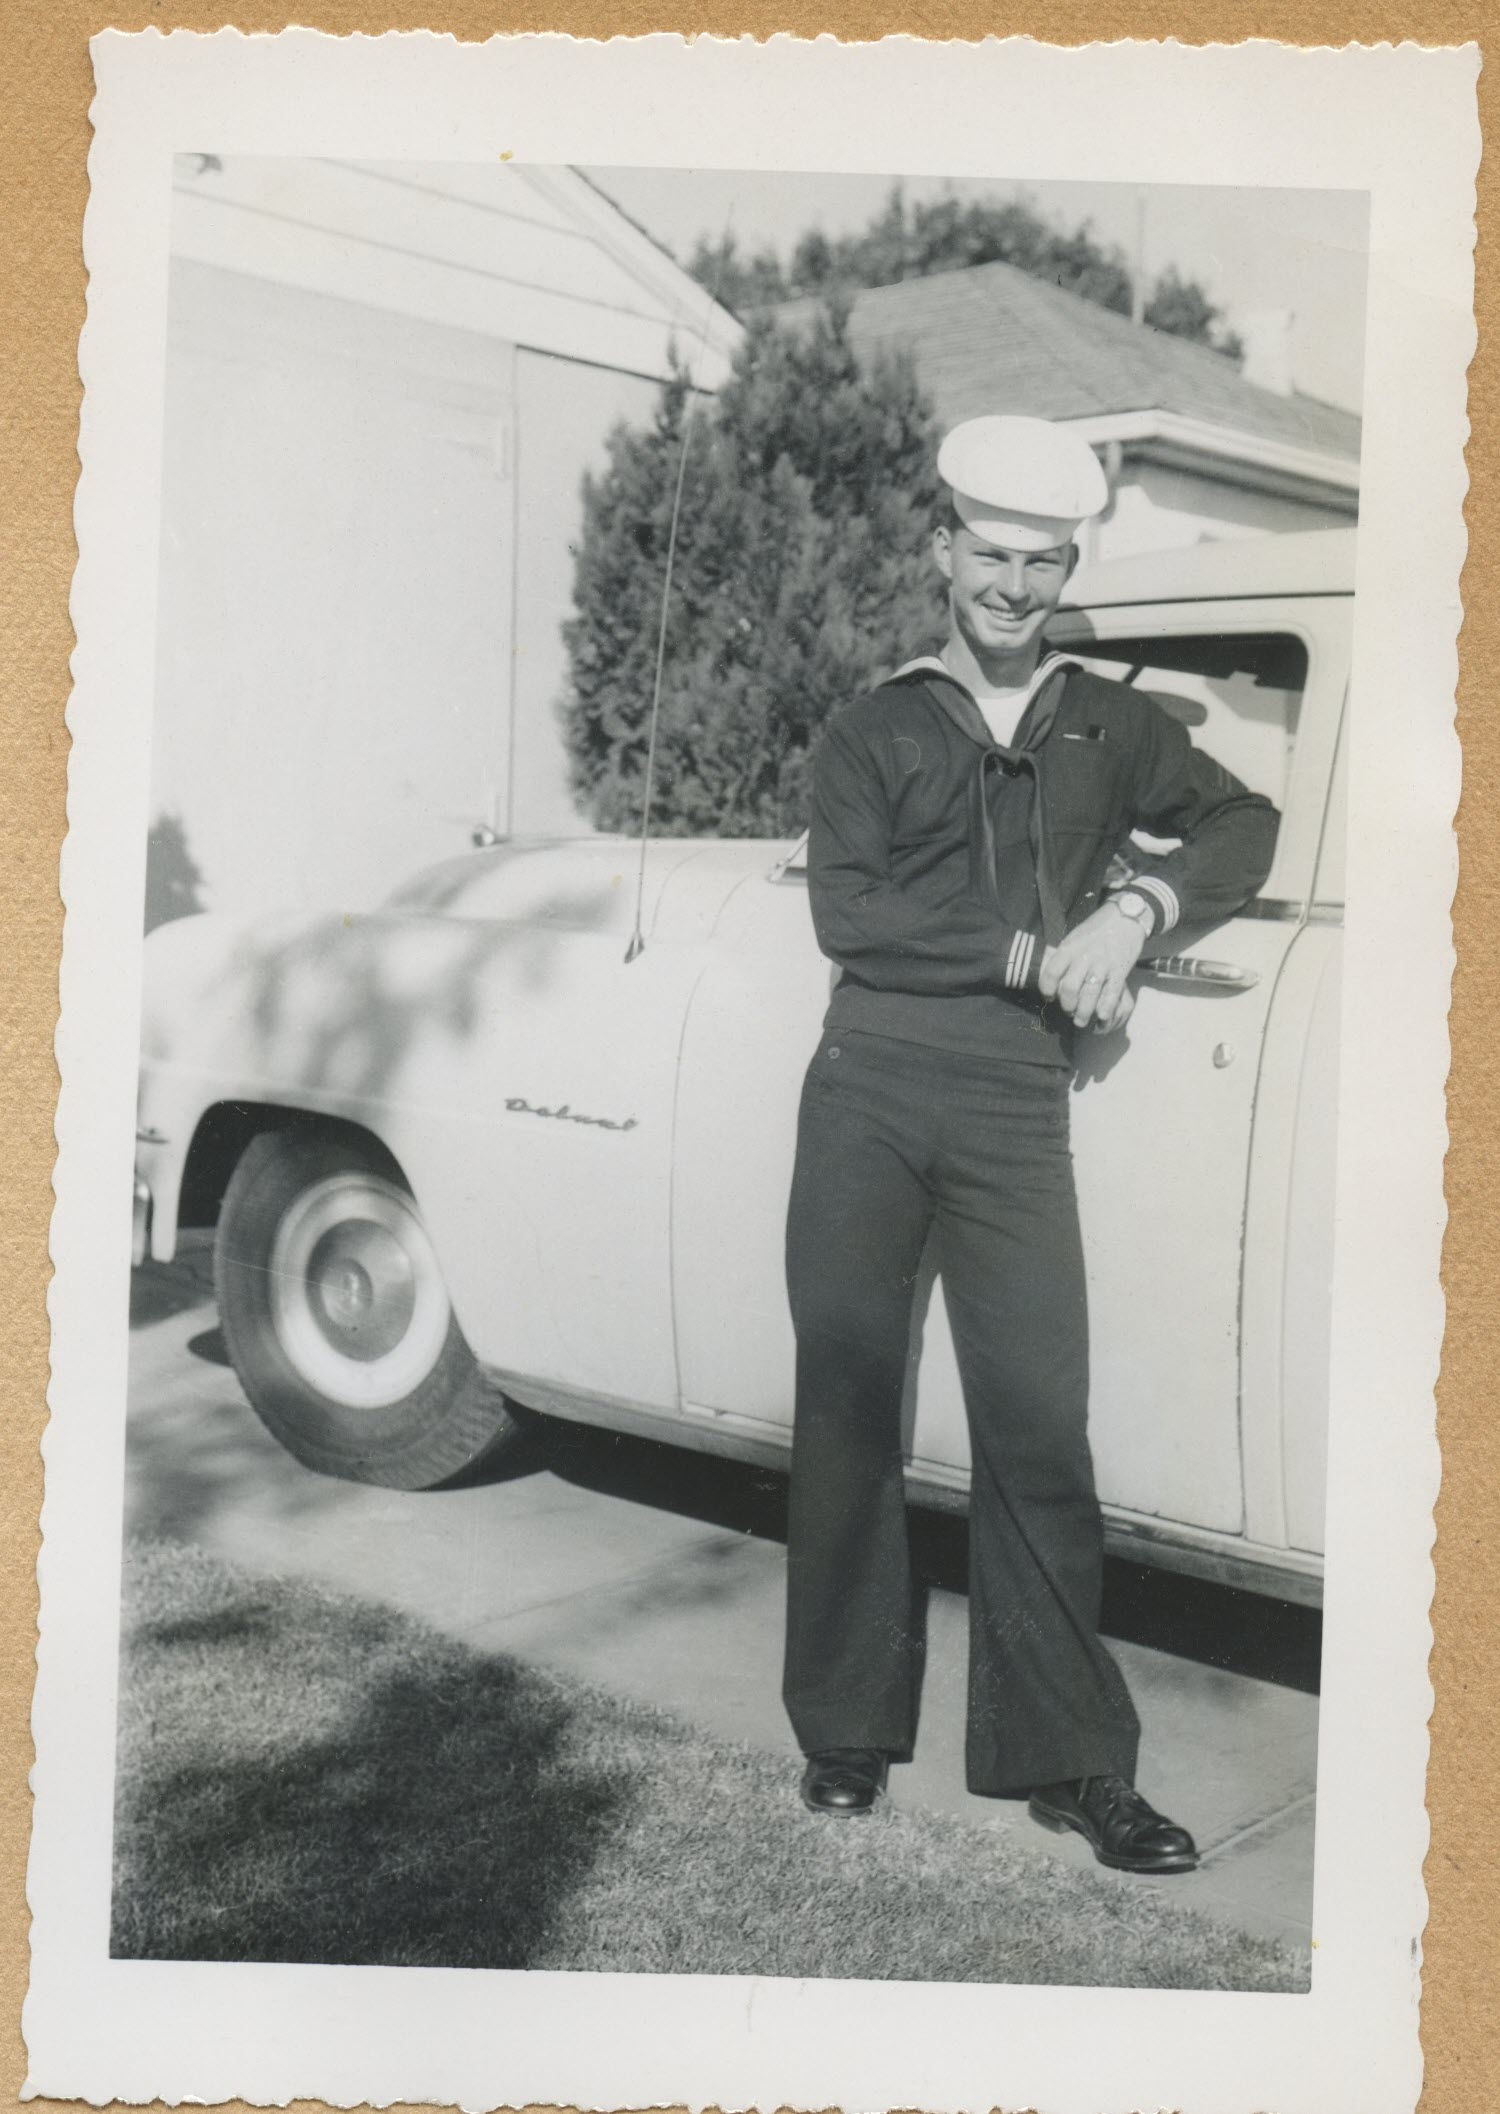 Sailors and soldiers serving overseas were counted in the 1950 census